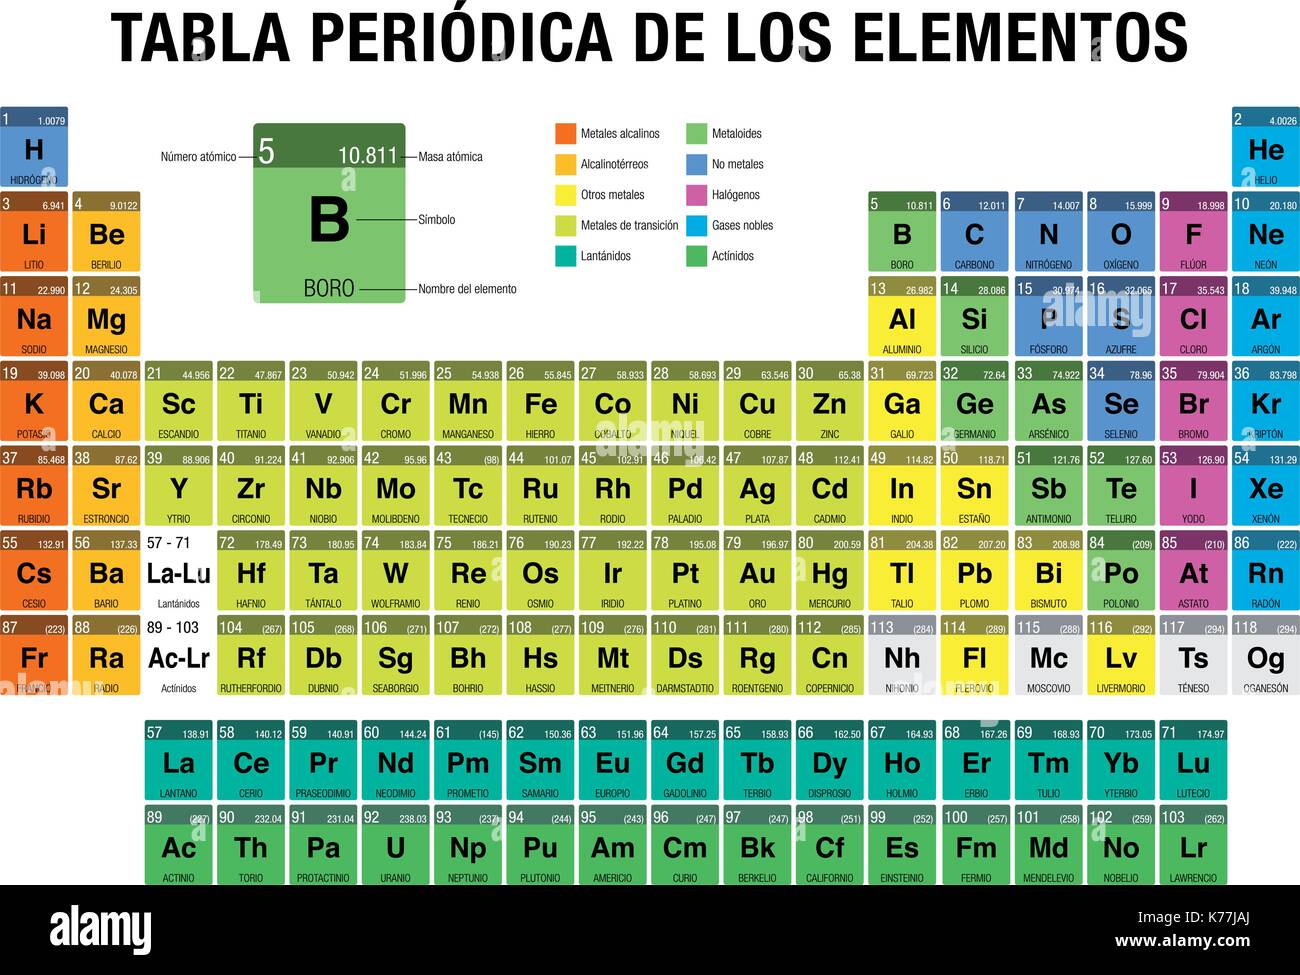 TABLA PERIODICA DE LOS ELEMENTOS  Periodic Table Of Elements In Spanish  Language  With The 4 New Elements Included On November 28, 2016